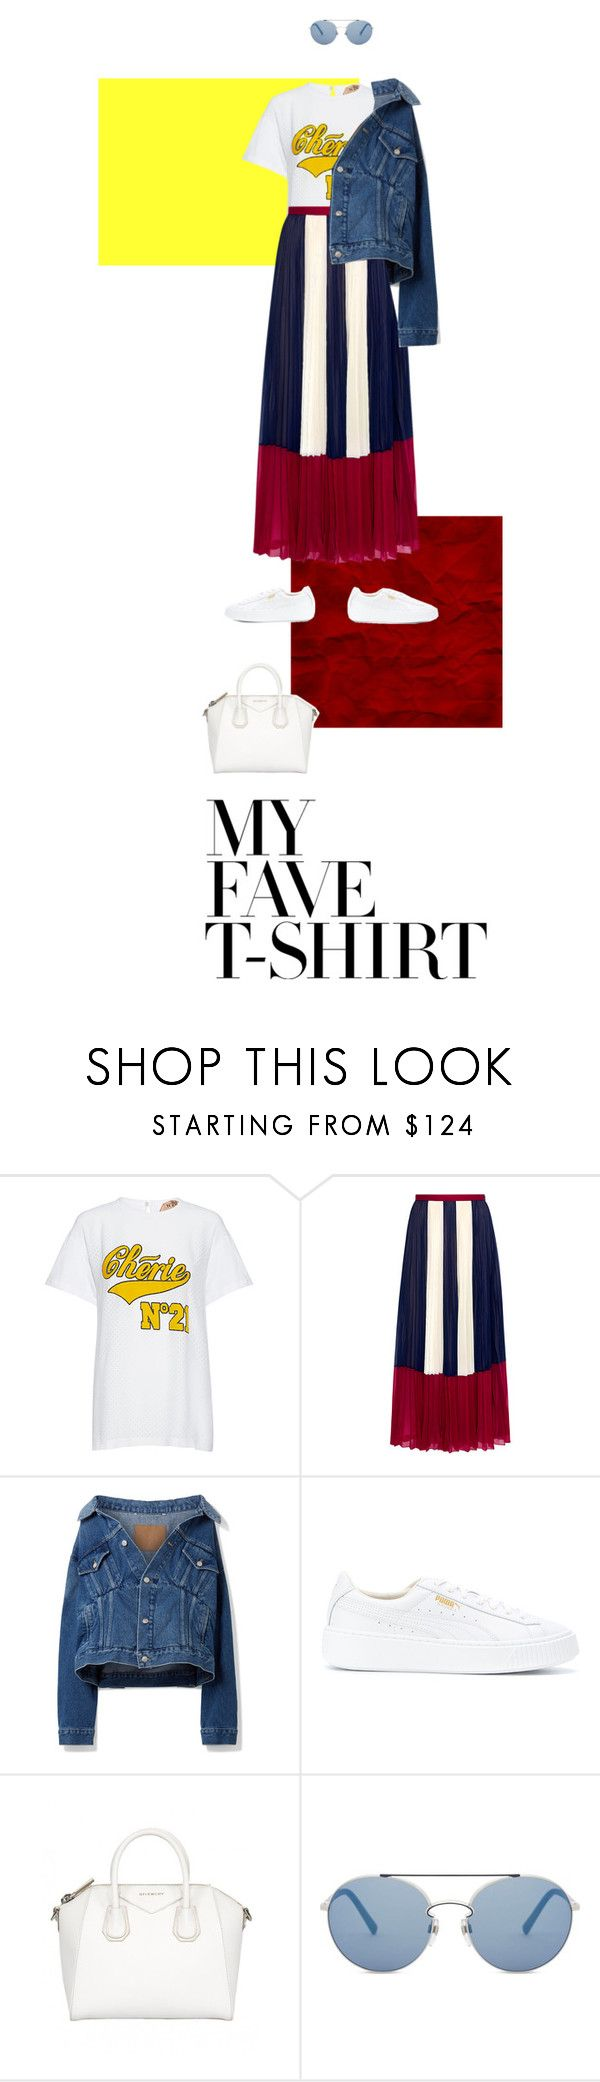 """""""My T-shirt"""" by haineni ❤ liked on Polyvore featuring N°21, RED Valentino, Balenciaga, Puma, Valentino and MyFaveTshirt"""